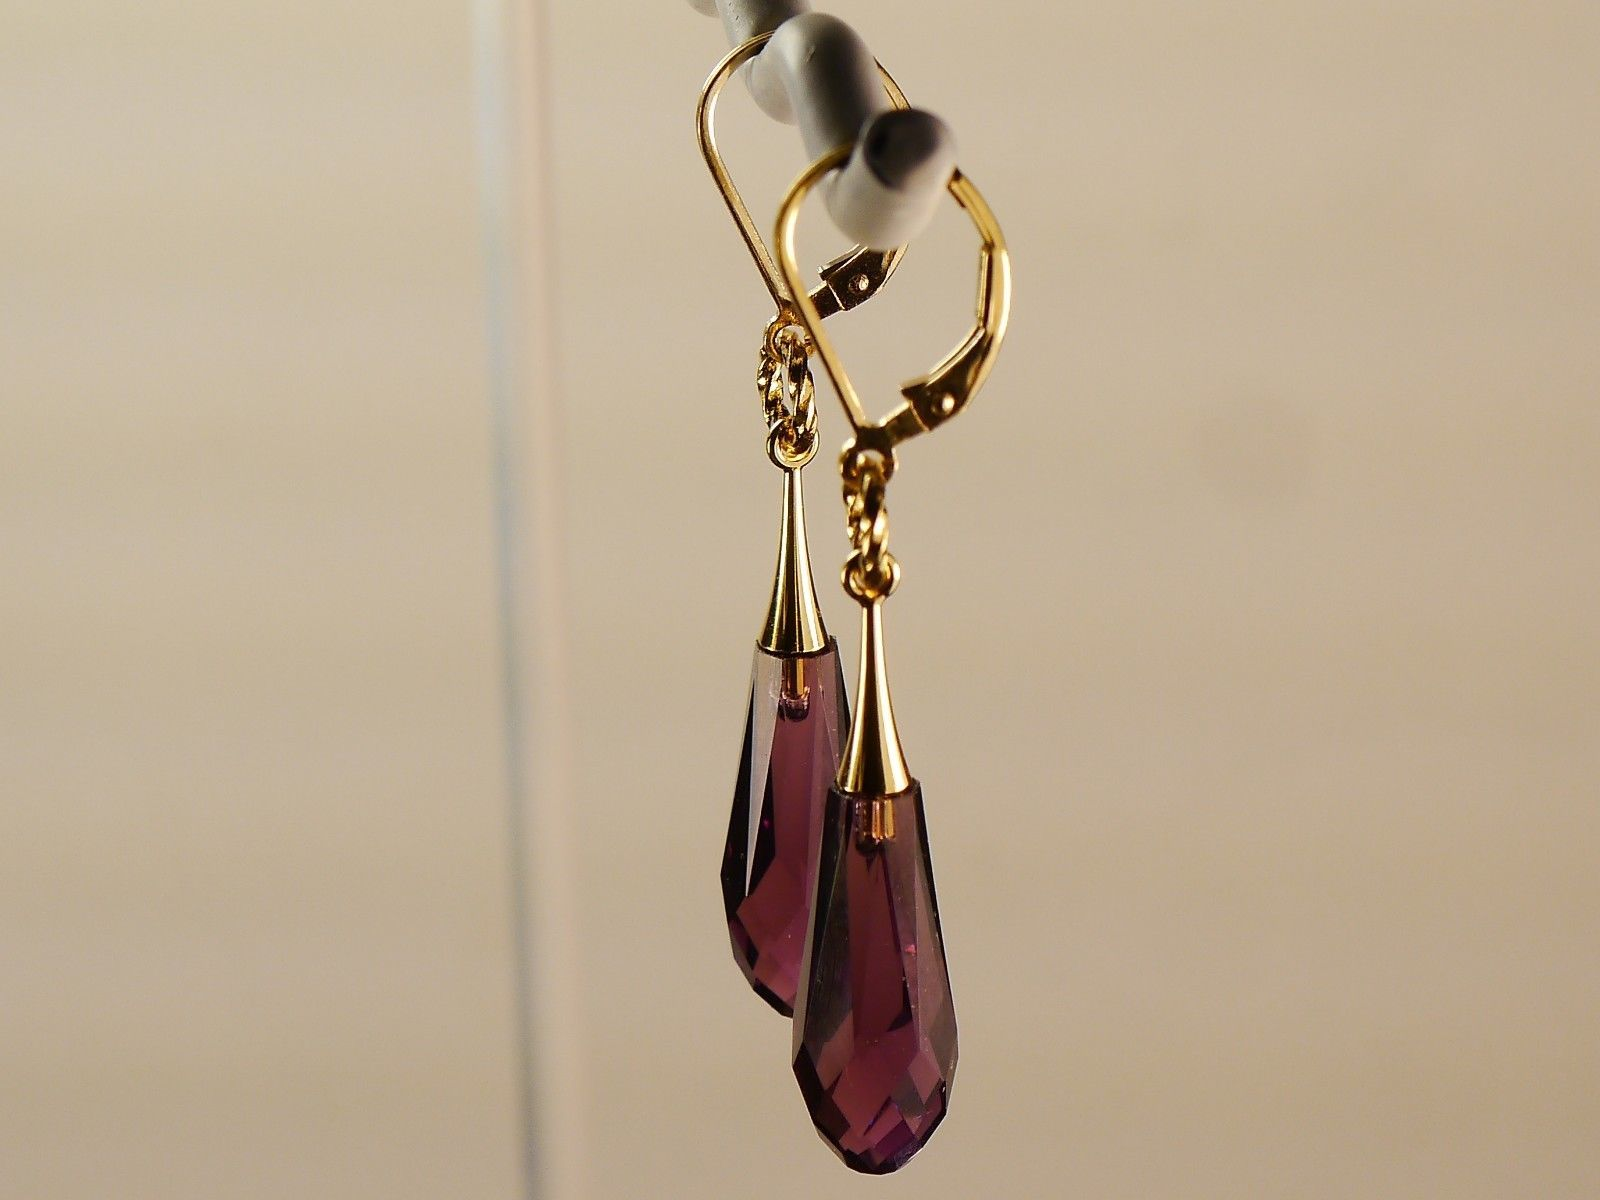 Swarovski Crystal Earrings/Amethyst /made w/Swarovski Elements /14k Gold Filled